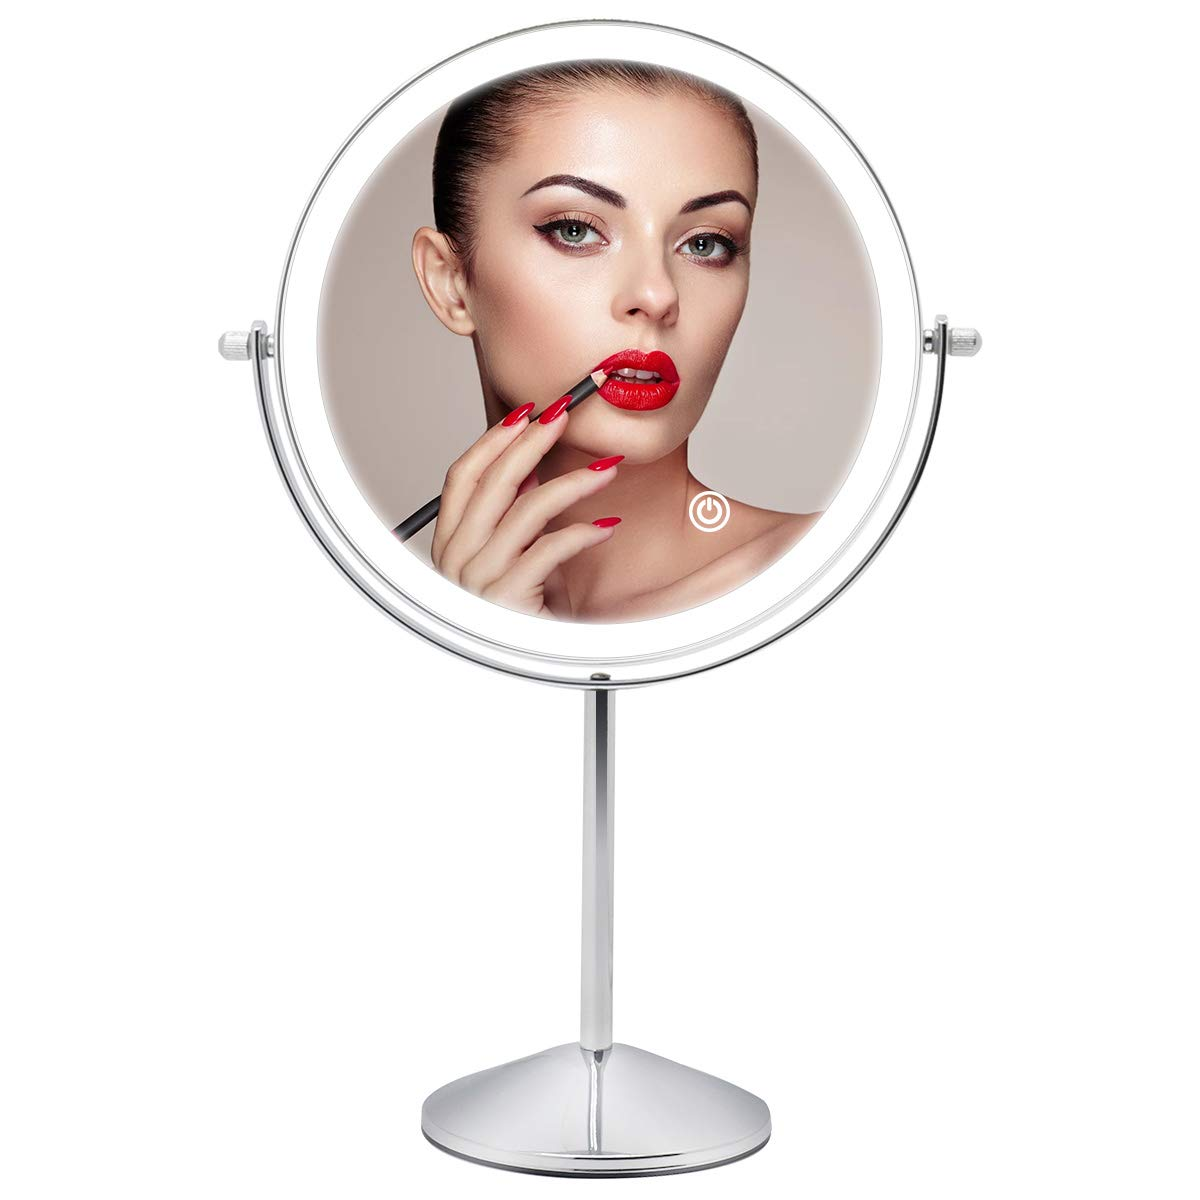 Lighted Makeup Mirror 10x Magnification, 8 Inch Rechargeable Tabletop Vanity Mirror Double Sided, 360 Degree Swivel Cosmetic Mirror with Touch Control Lights Brightness Adjustable, Chrome Finish